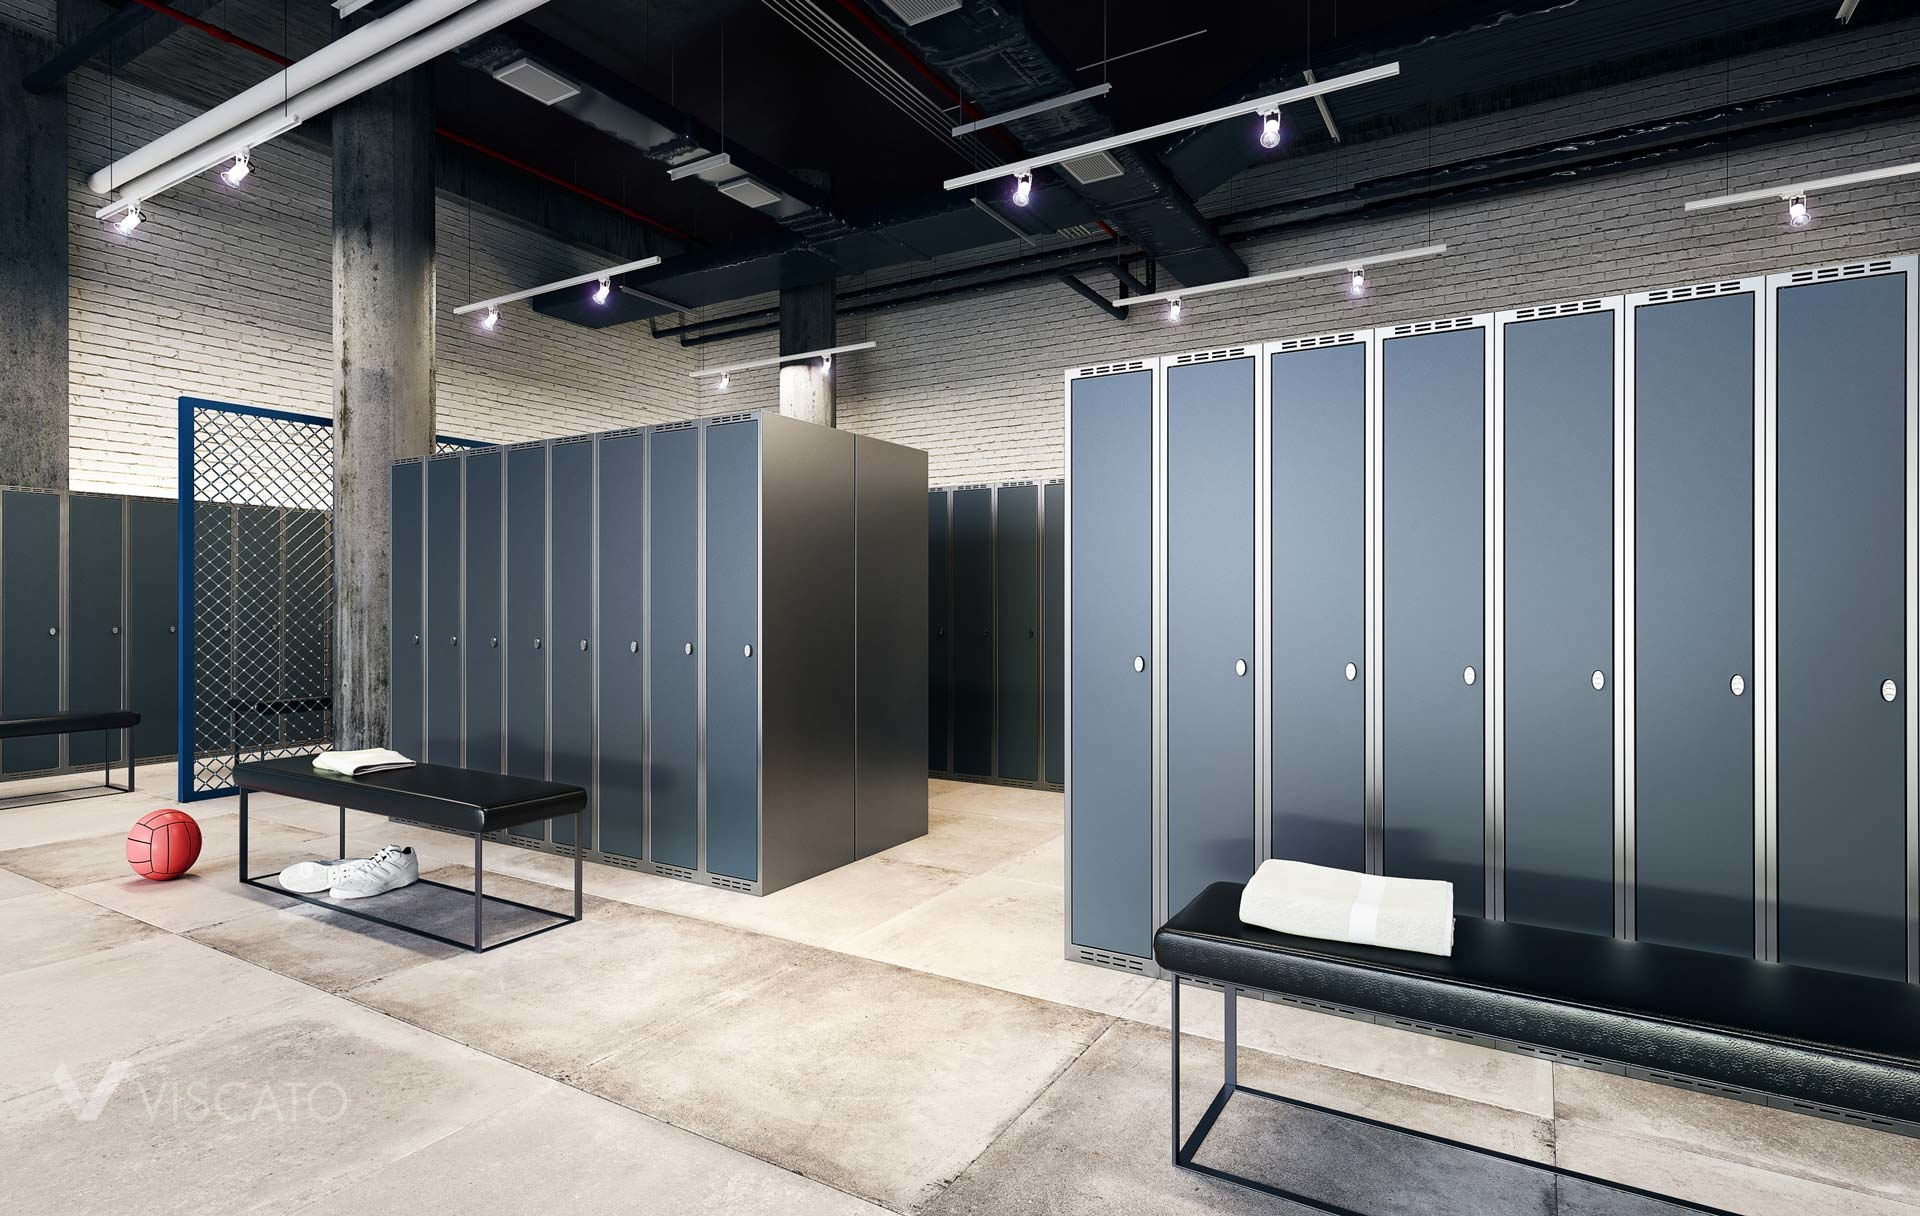 3D interior renderings of a changing room with lockers- Viscato